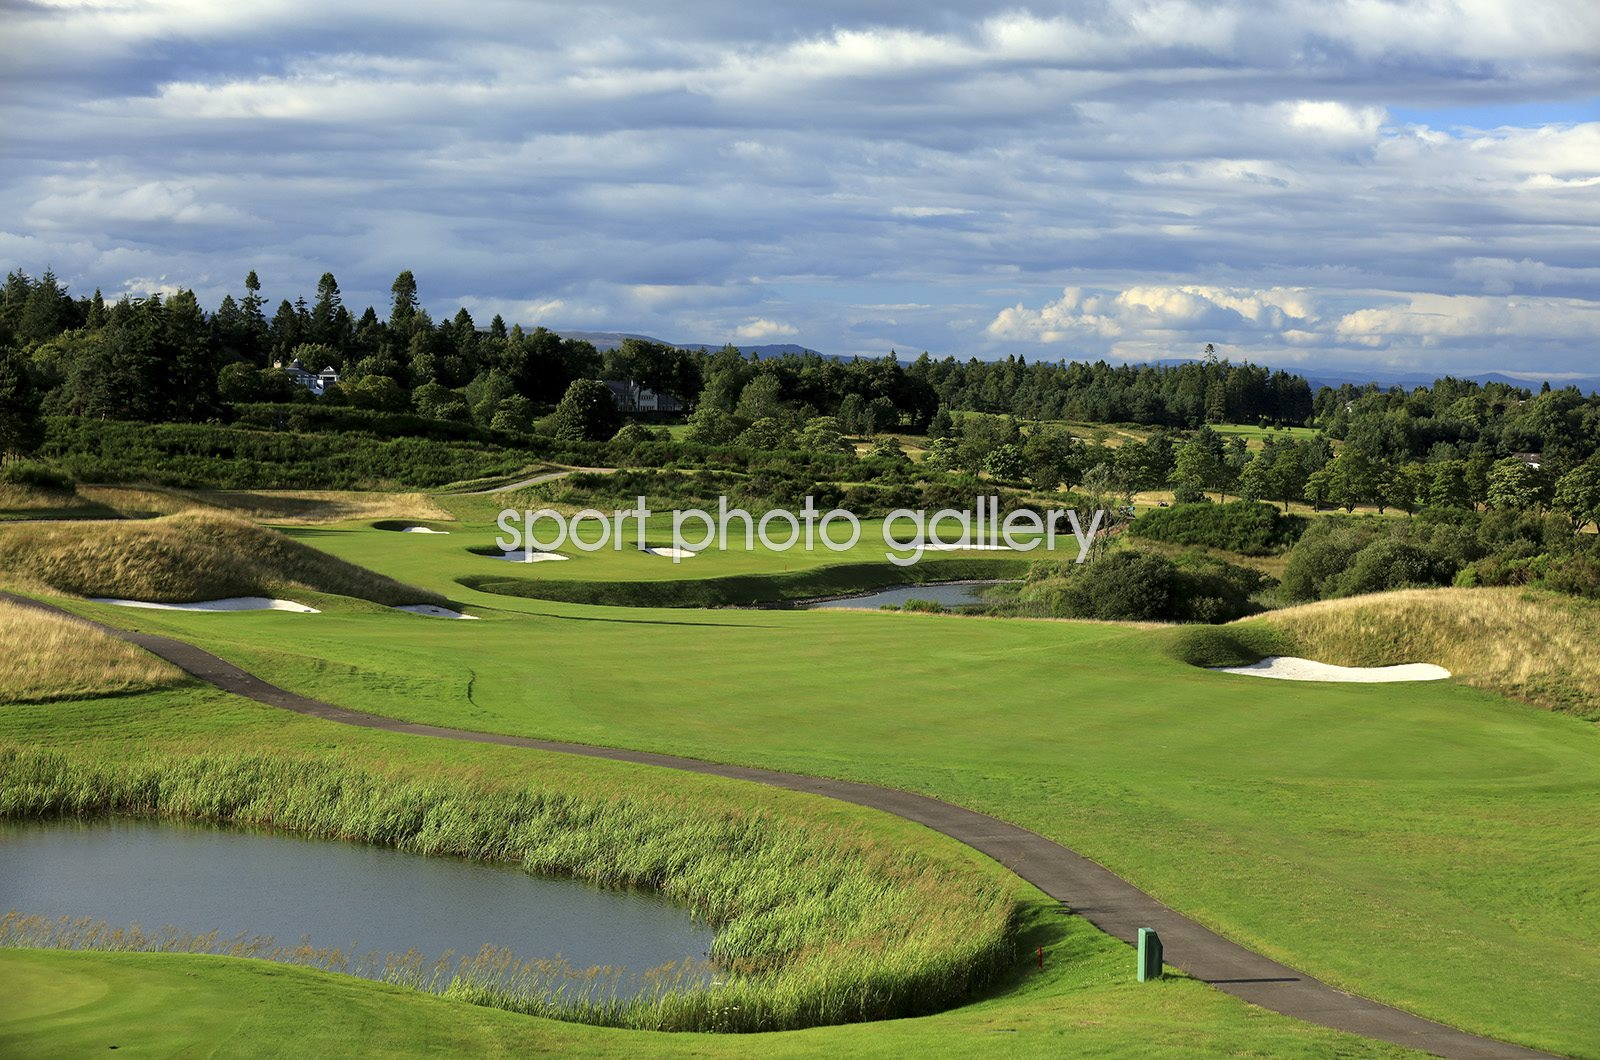 Gleneagles Hotel Centenary Course 9th Hole Auchterarder, Scotland